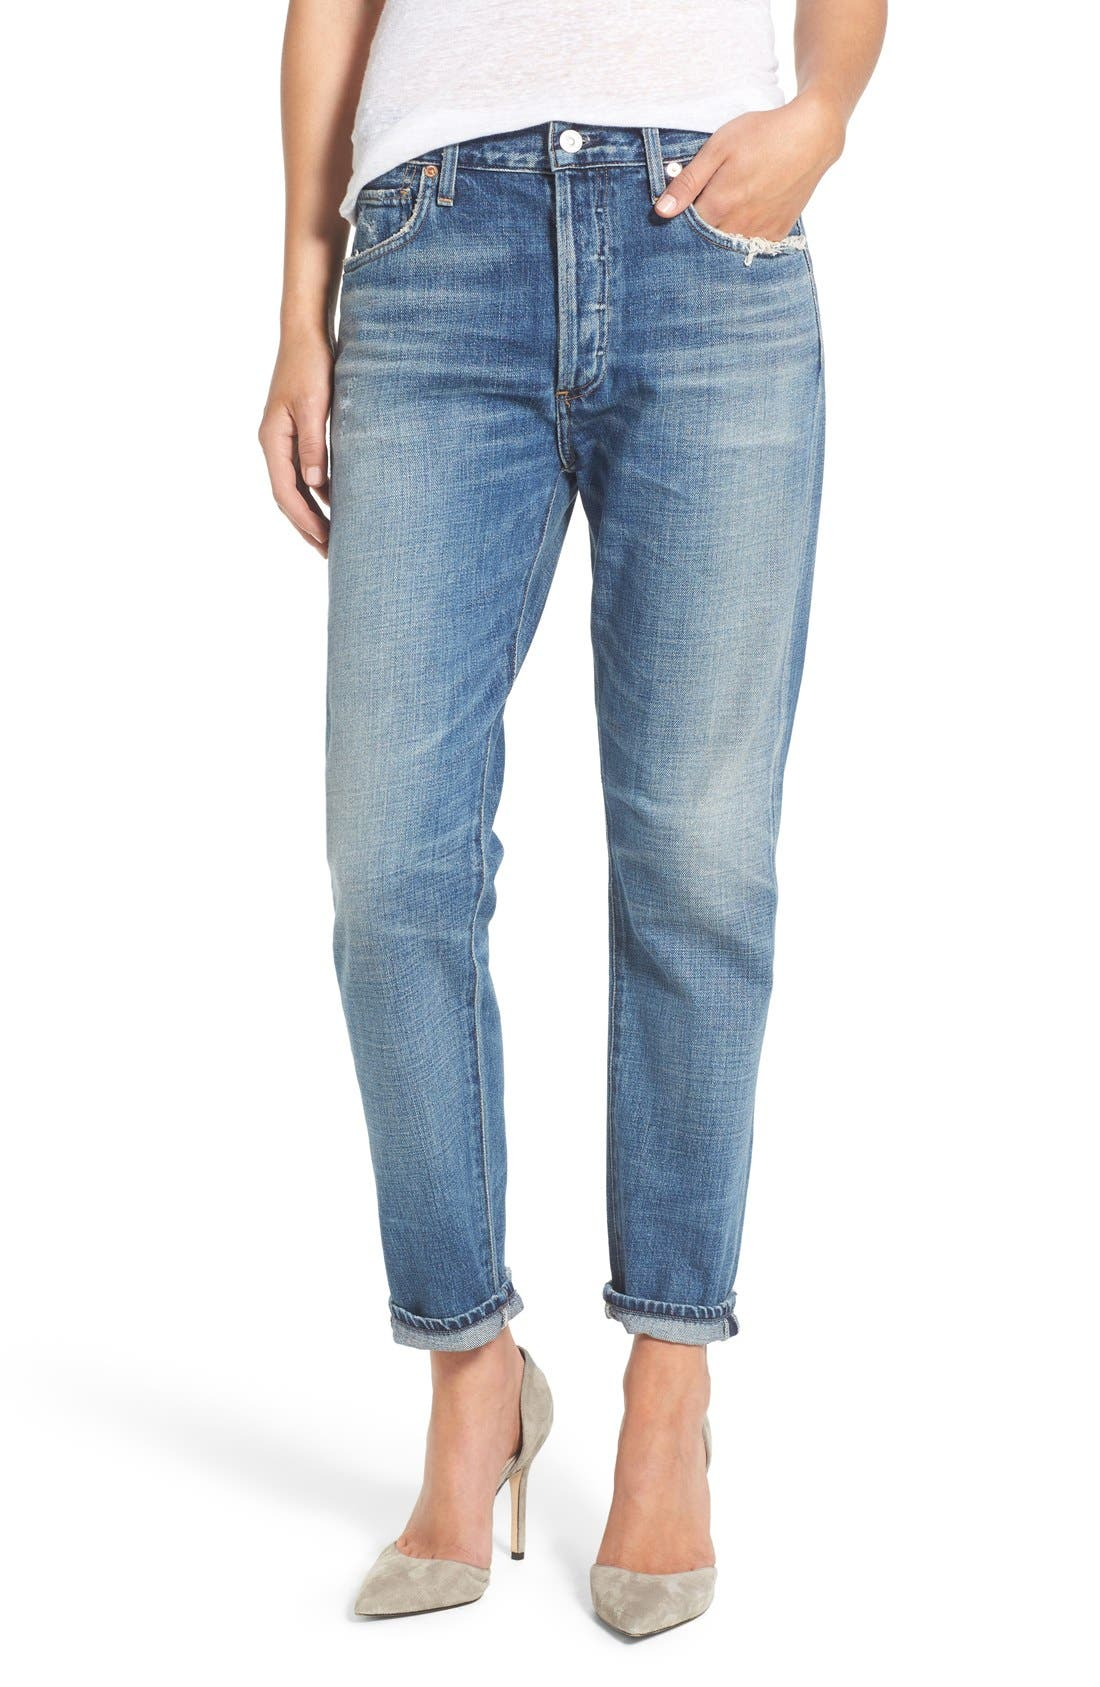 Alternate Image 1 Selected - Citizens of Humanity Liya High Waist Slim Boyfriend Jeans (Fade Out)